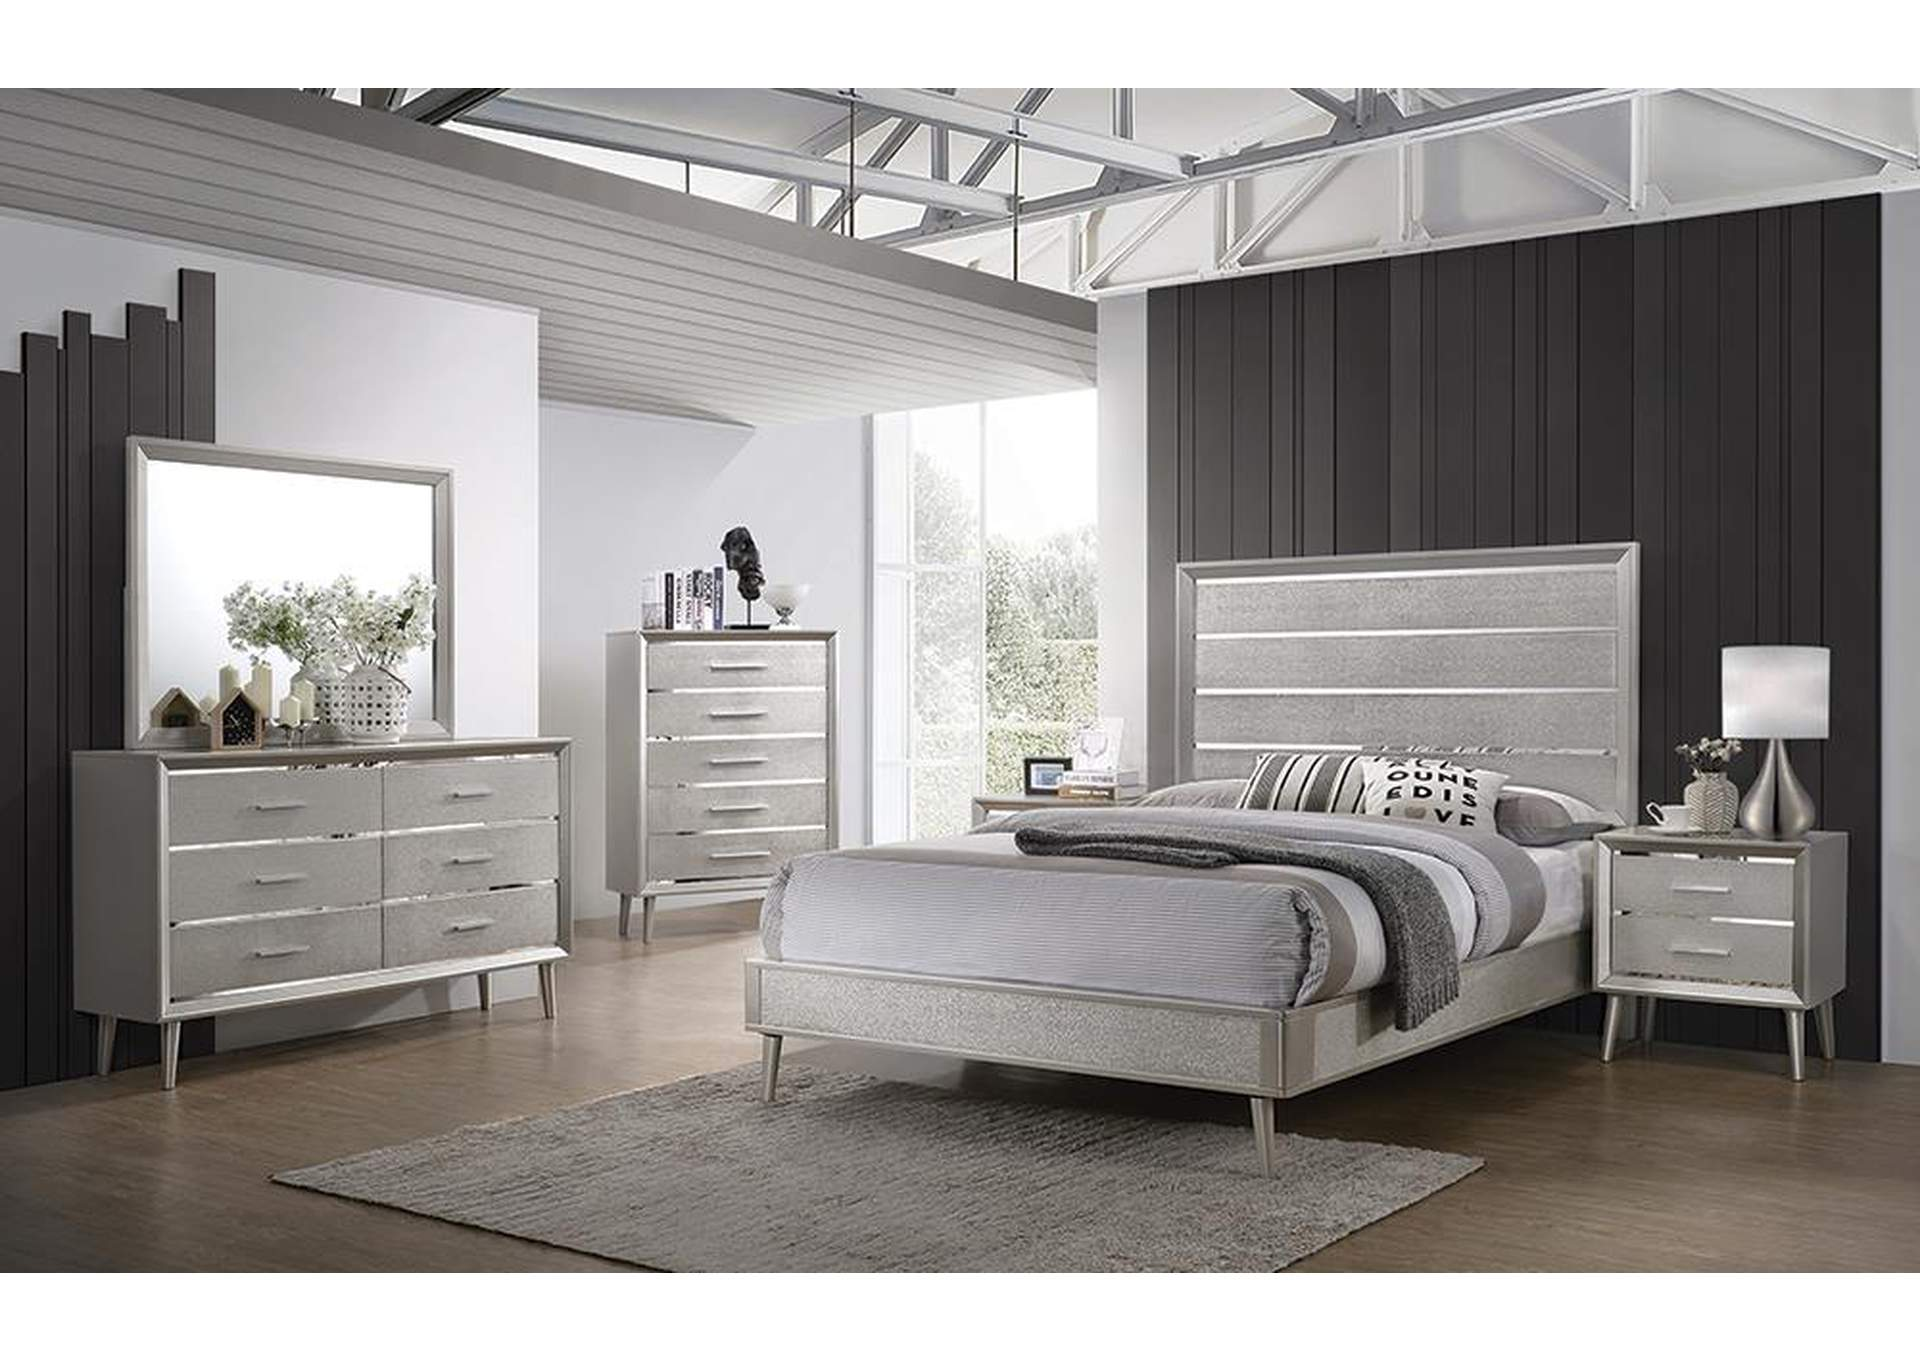 Delta California King Bed,Coaster Furniture